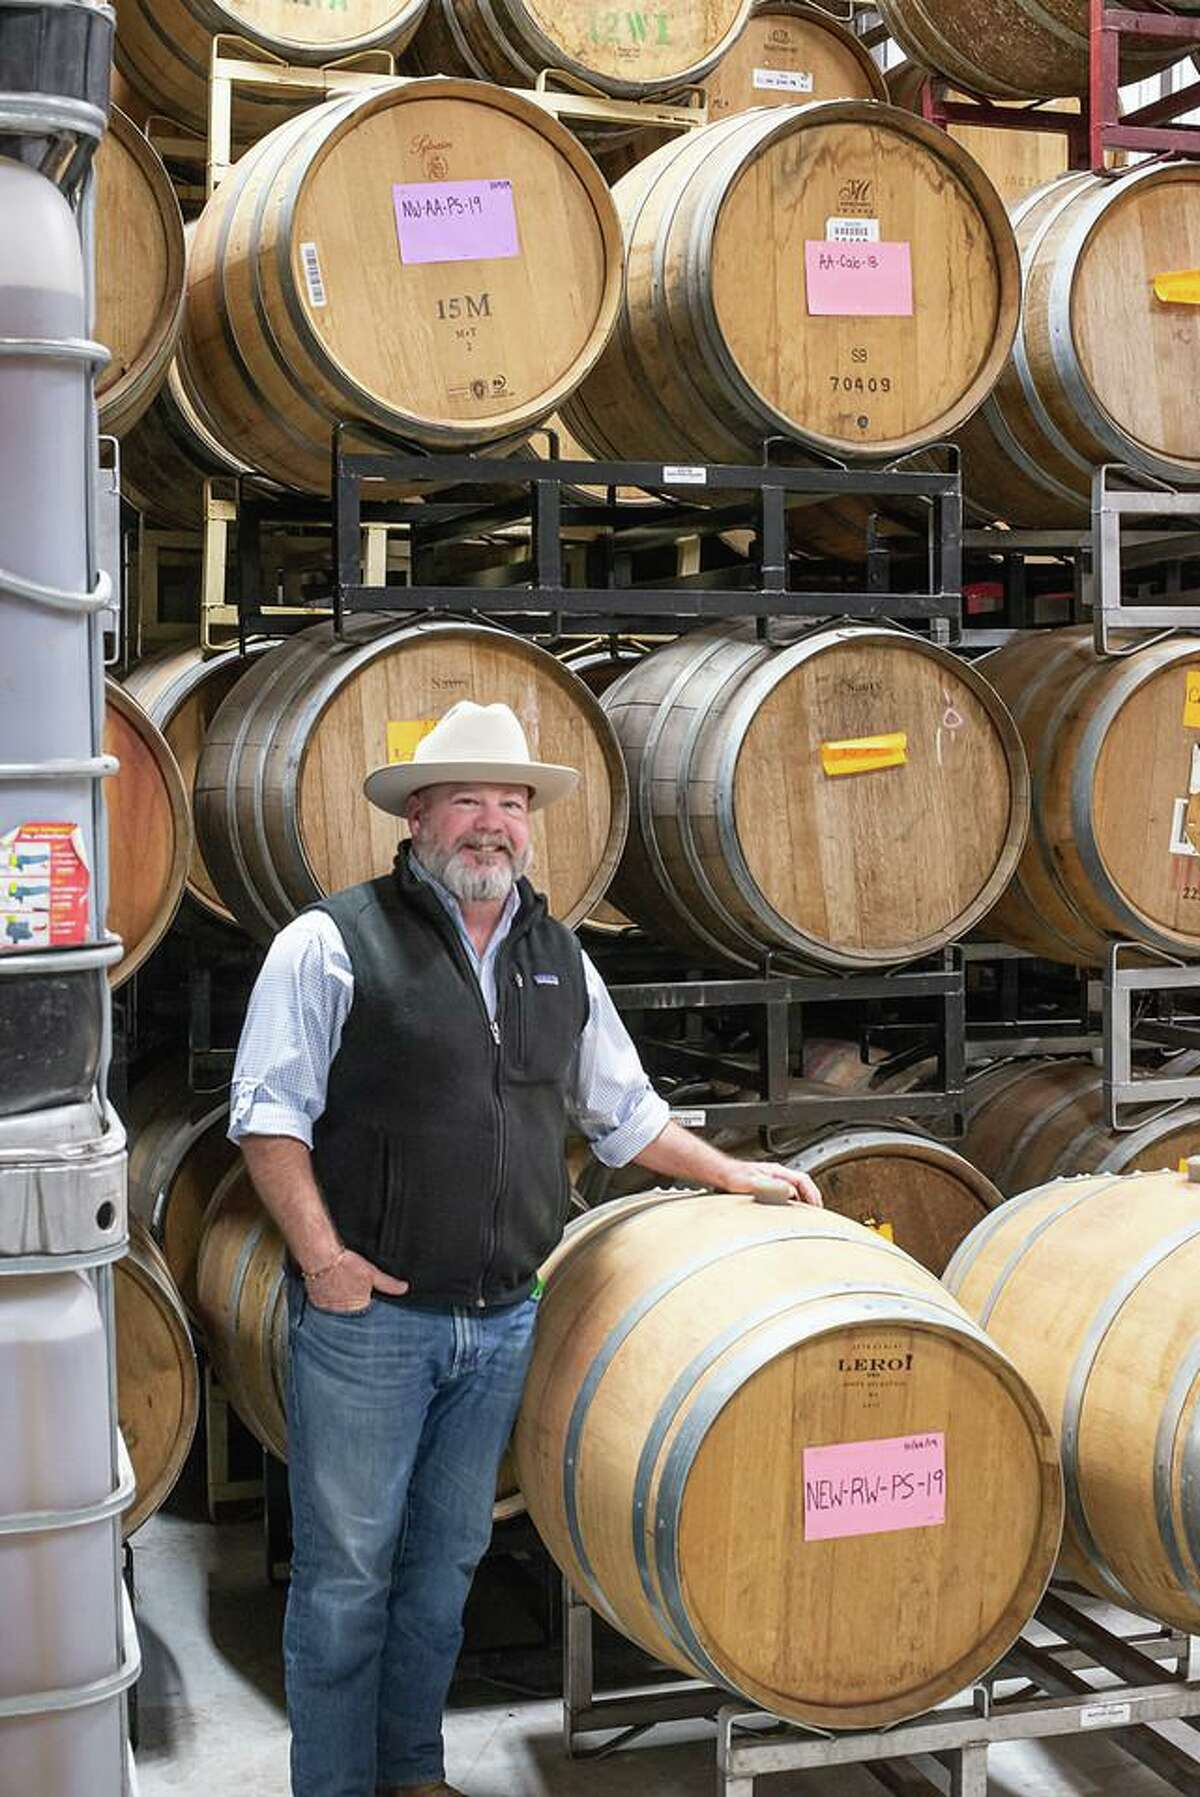 John Rivenbaugh is one of Texas' leading forces in leading the Nation in the making of World-Class Tannat Wines. This native Texan is imparting his knowledge of making award-winning wines to fledgling winemakers, currently working with 15 winery upstarts in Texas, including the Houston Heights.